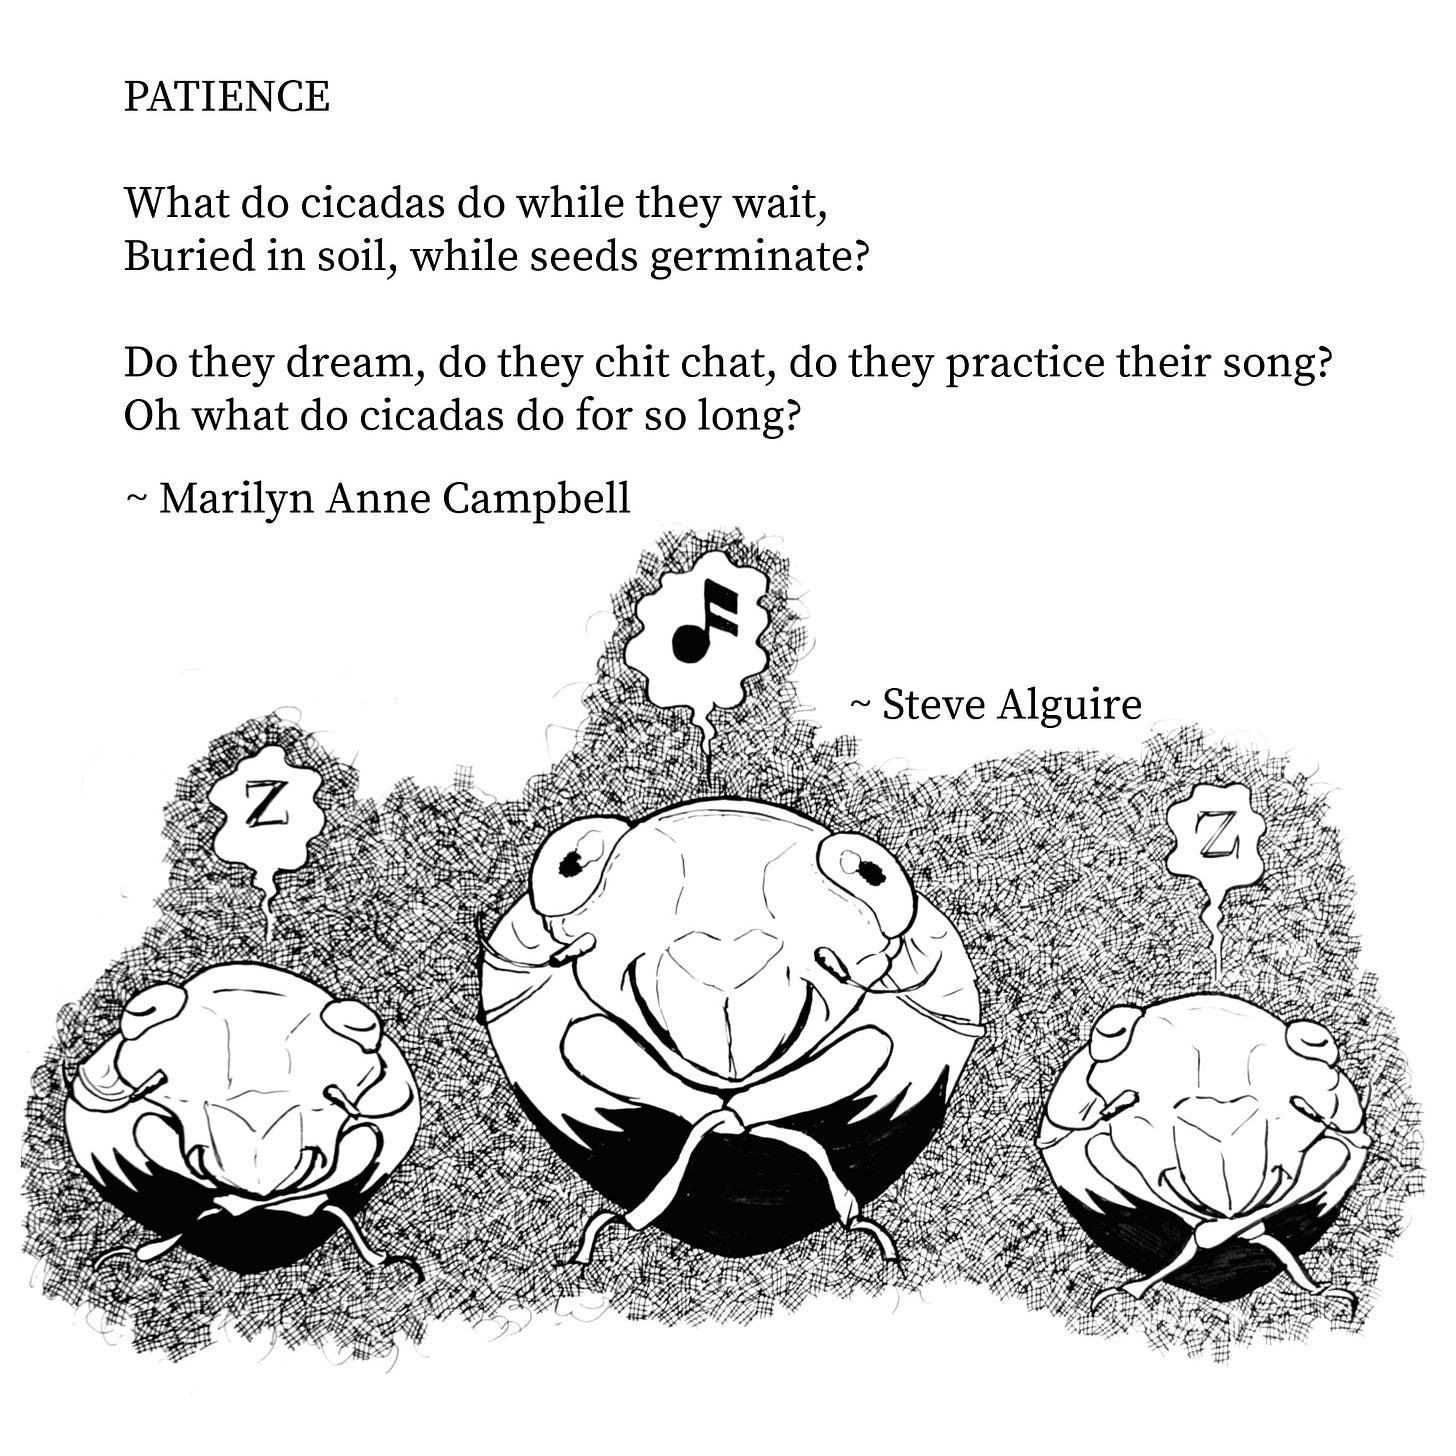 Text of poem titled Patience reads: What do cicadas do while they wait, buried in soil, while seeds germinate? Do they dream, do they chit chat, do they practice, do they practice their song? Oh what do cicadas do for so long? By Marilyn Anne Campbell. Underneath is an ink drawing by Steve Alguire of three cicadas underground, two asleep, one singing.